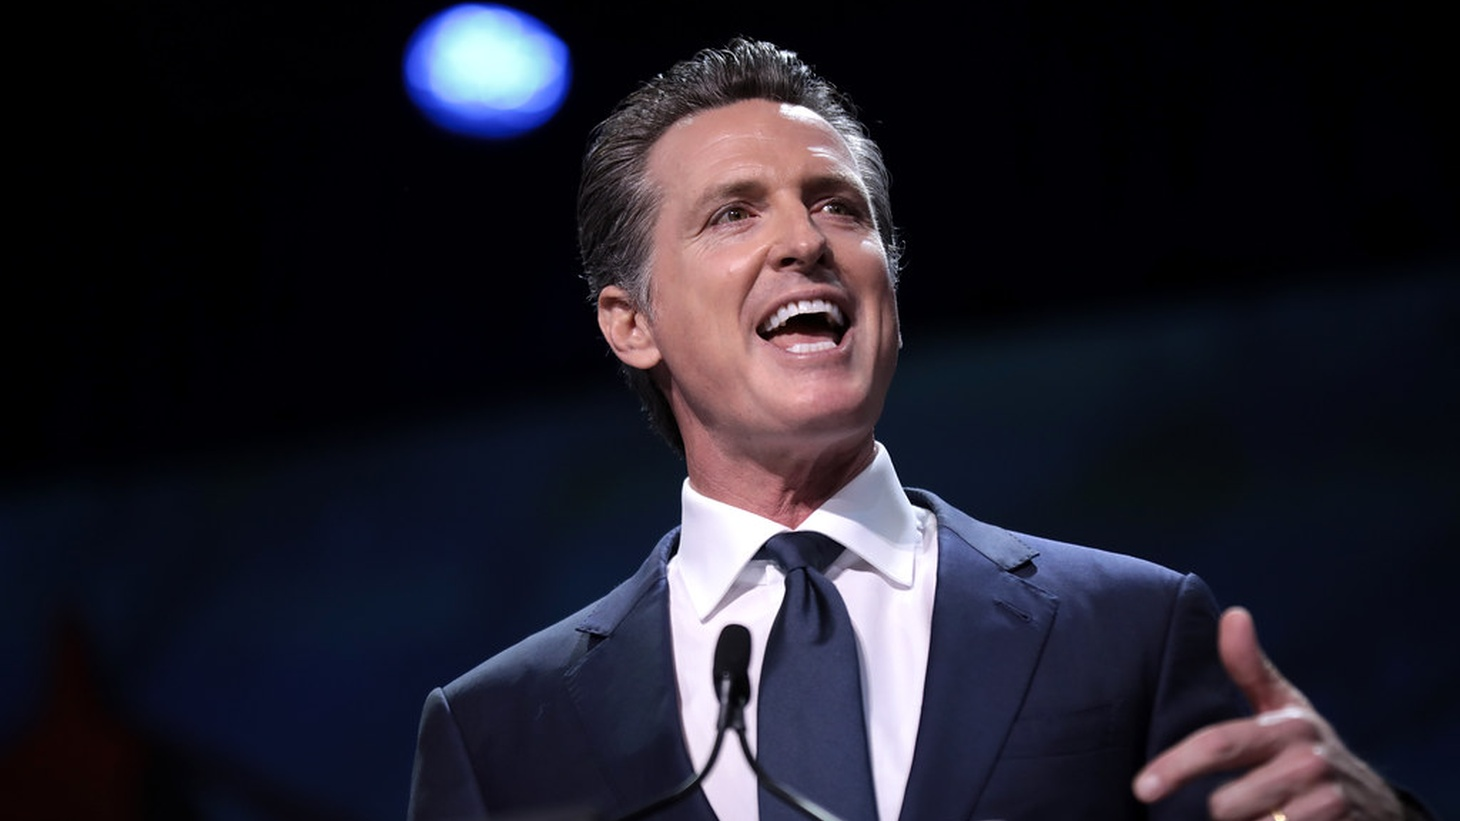 Newsom says social distancing efforts have been working.